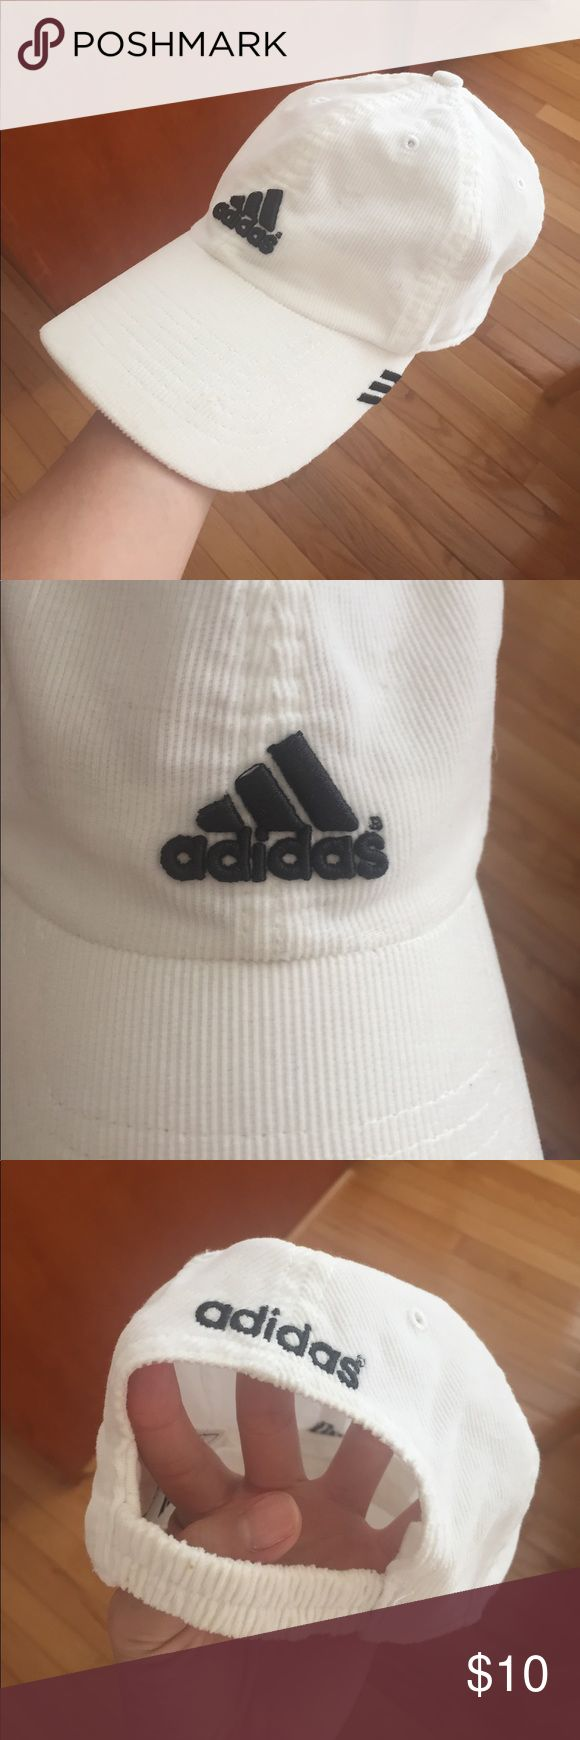 Black and White Adidas Baseball Cap So chic and cool for everyday wear. Black and white style in a light fabric makes it easy to wear in the summer months as well. Slight staining on the cap line - see pictured (although could probably come out with a good wash). Elastic band in the back allows for comfortable fit. adidas Accessories Hats